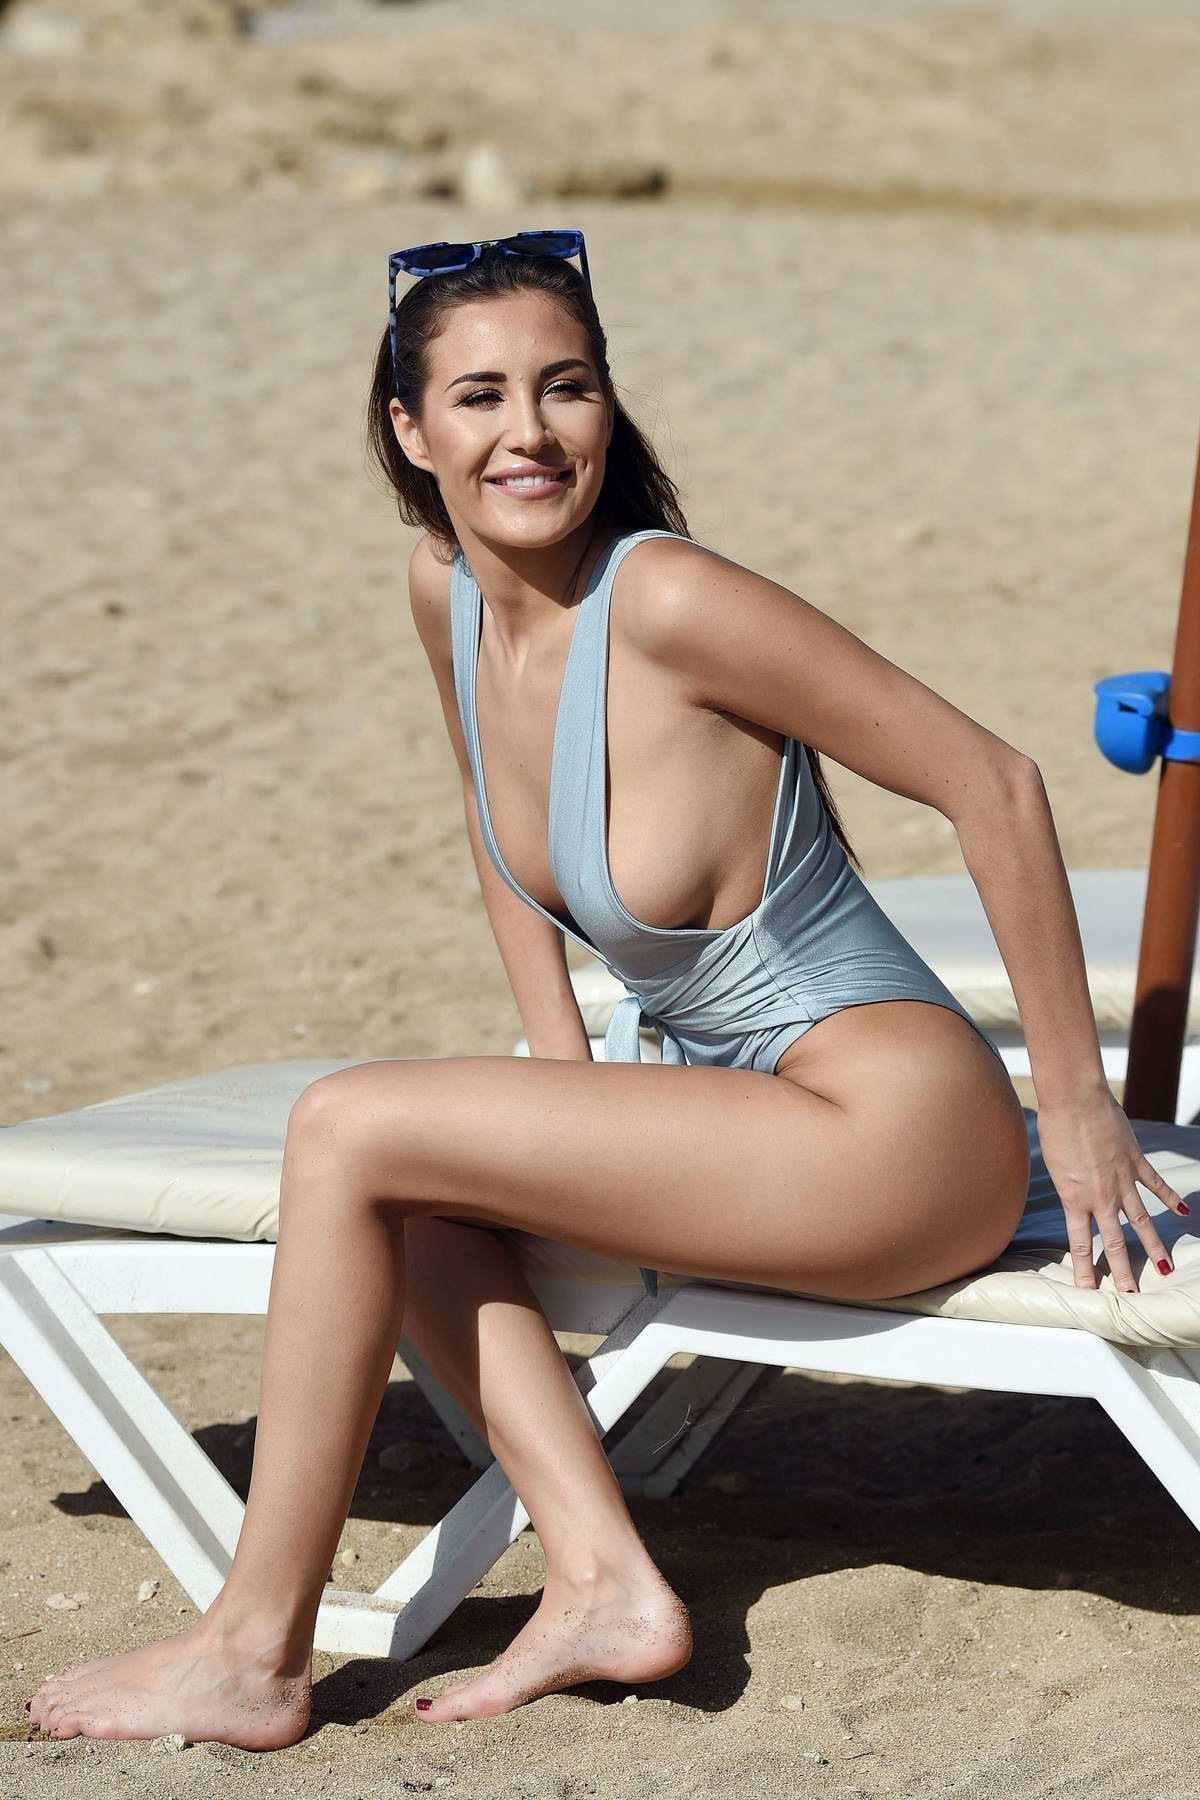 Chloe Goodman sports a light blue swimsuit as she relax on the beach in Cape Verde